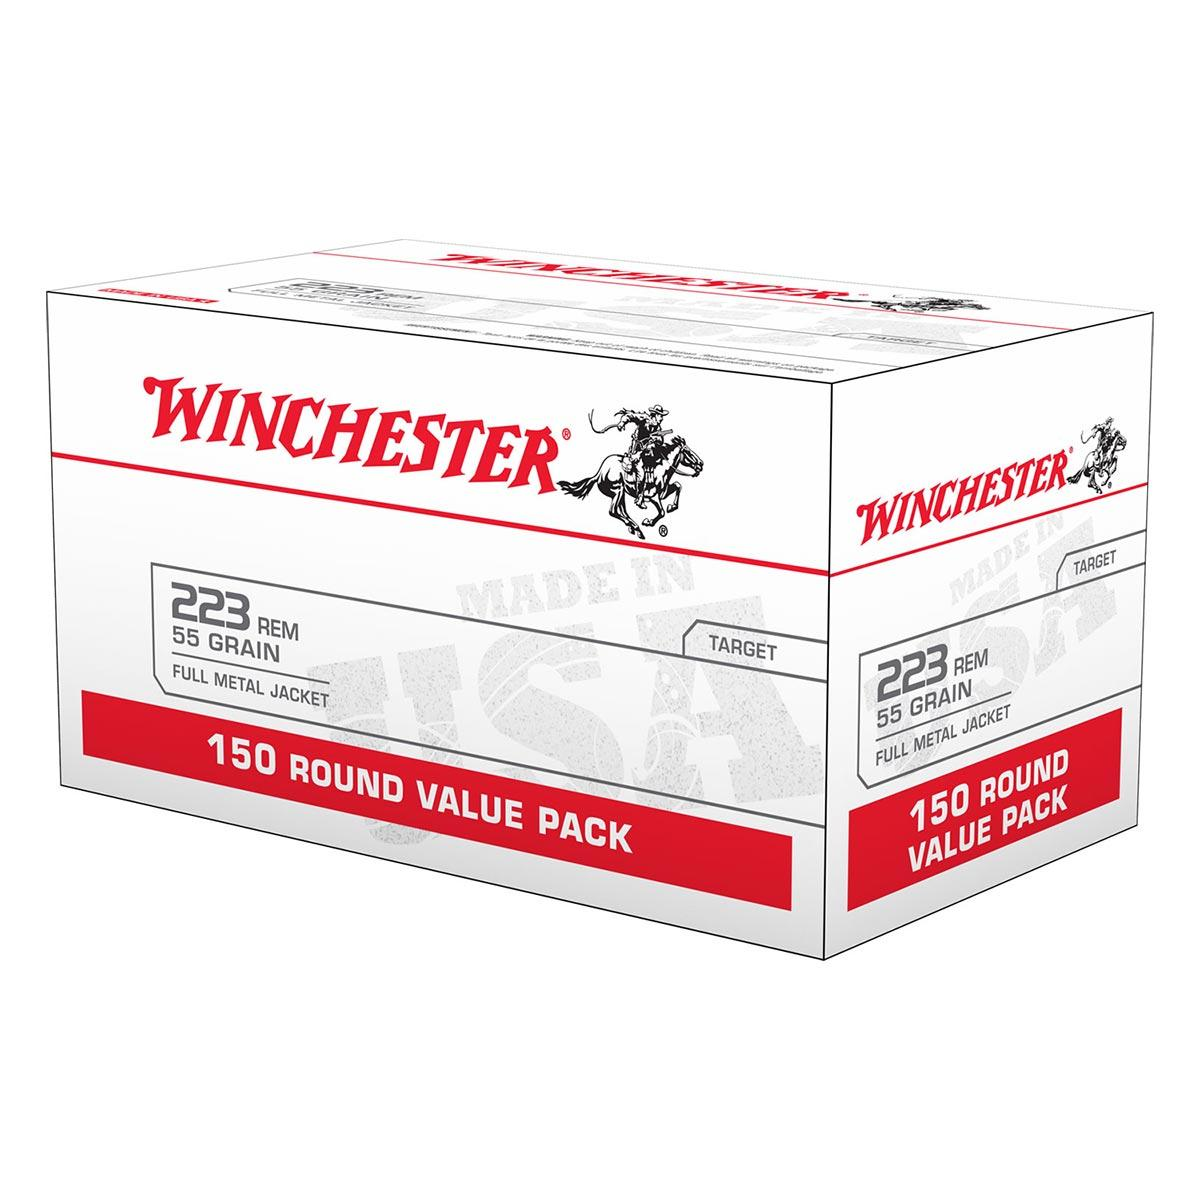 Winchester 223 Remington 55 Grain Full Metal Jacket, 150 round box_1.jpg